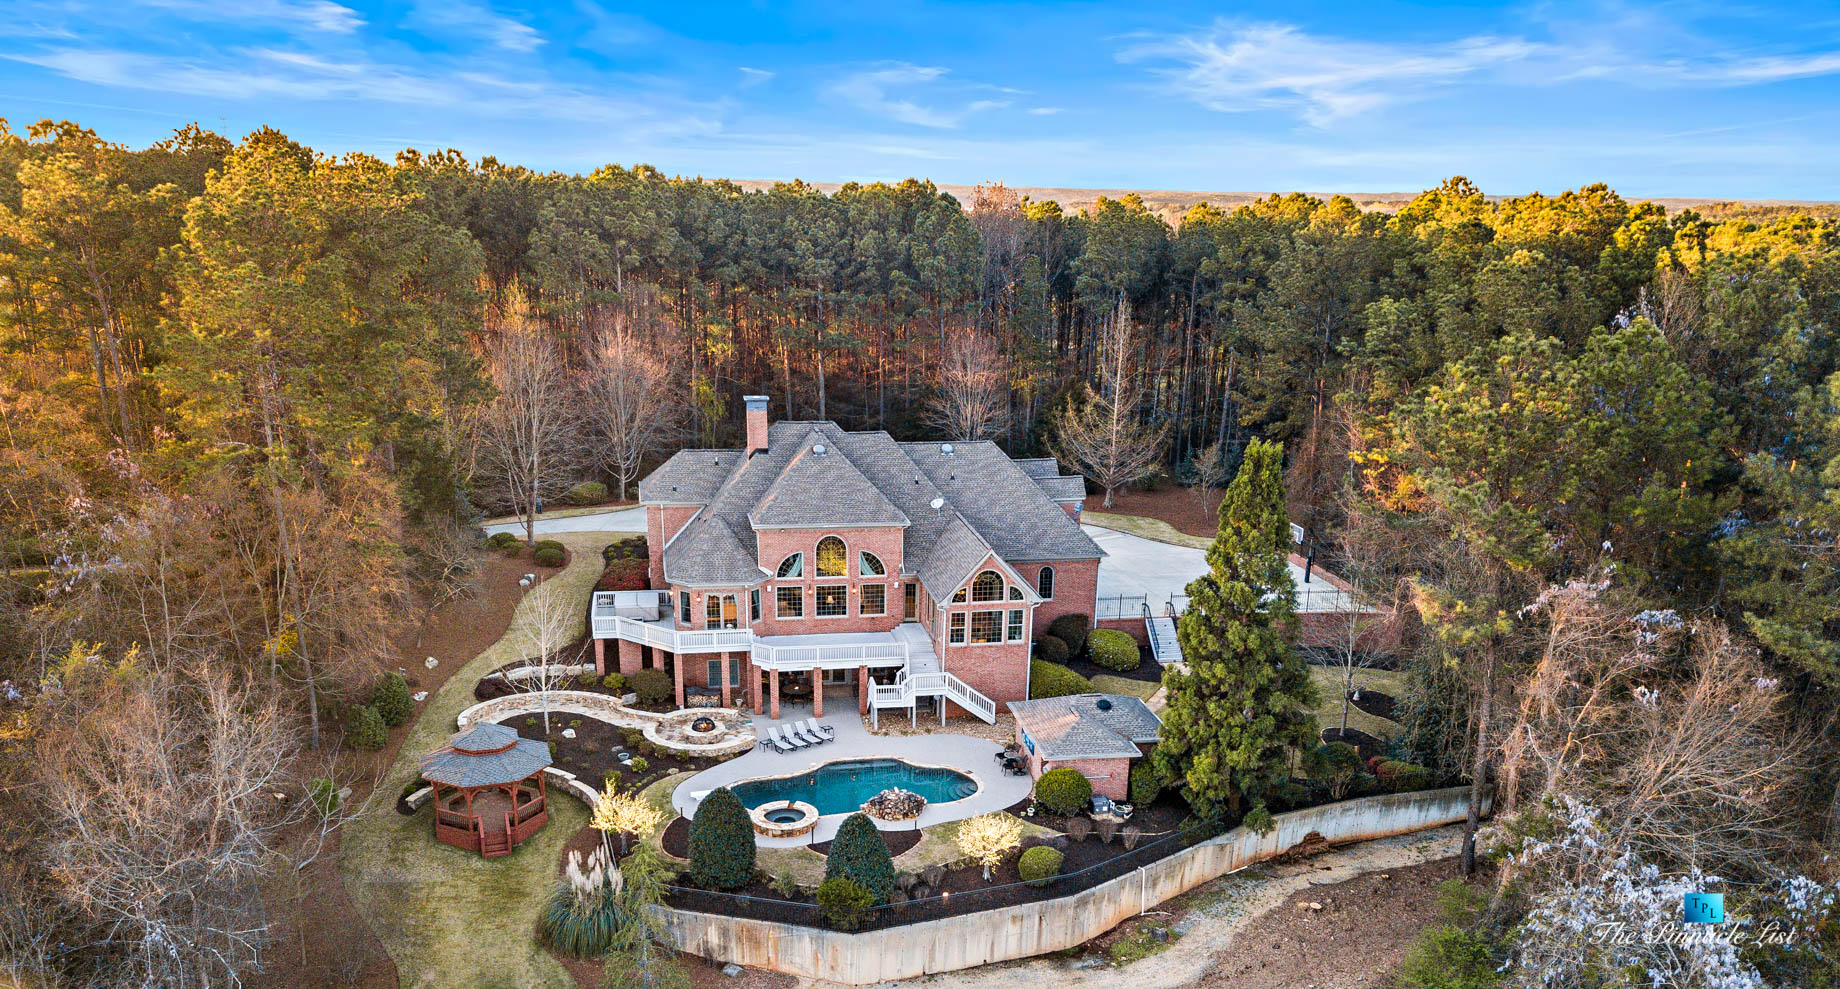 2219 Costley Mill Rd NE, Conyers, GA, USA – Drone Aerial Backyard Property View – Luxury Real Estate – Equestrian Country Home